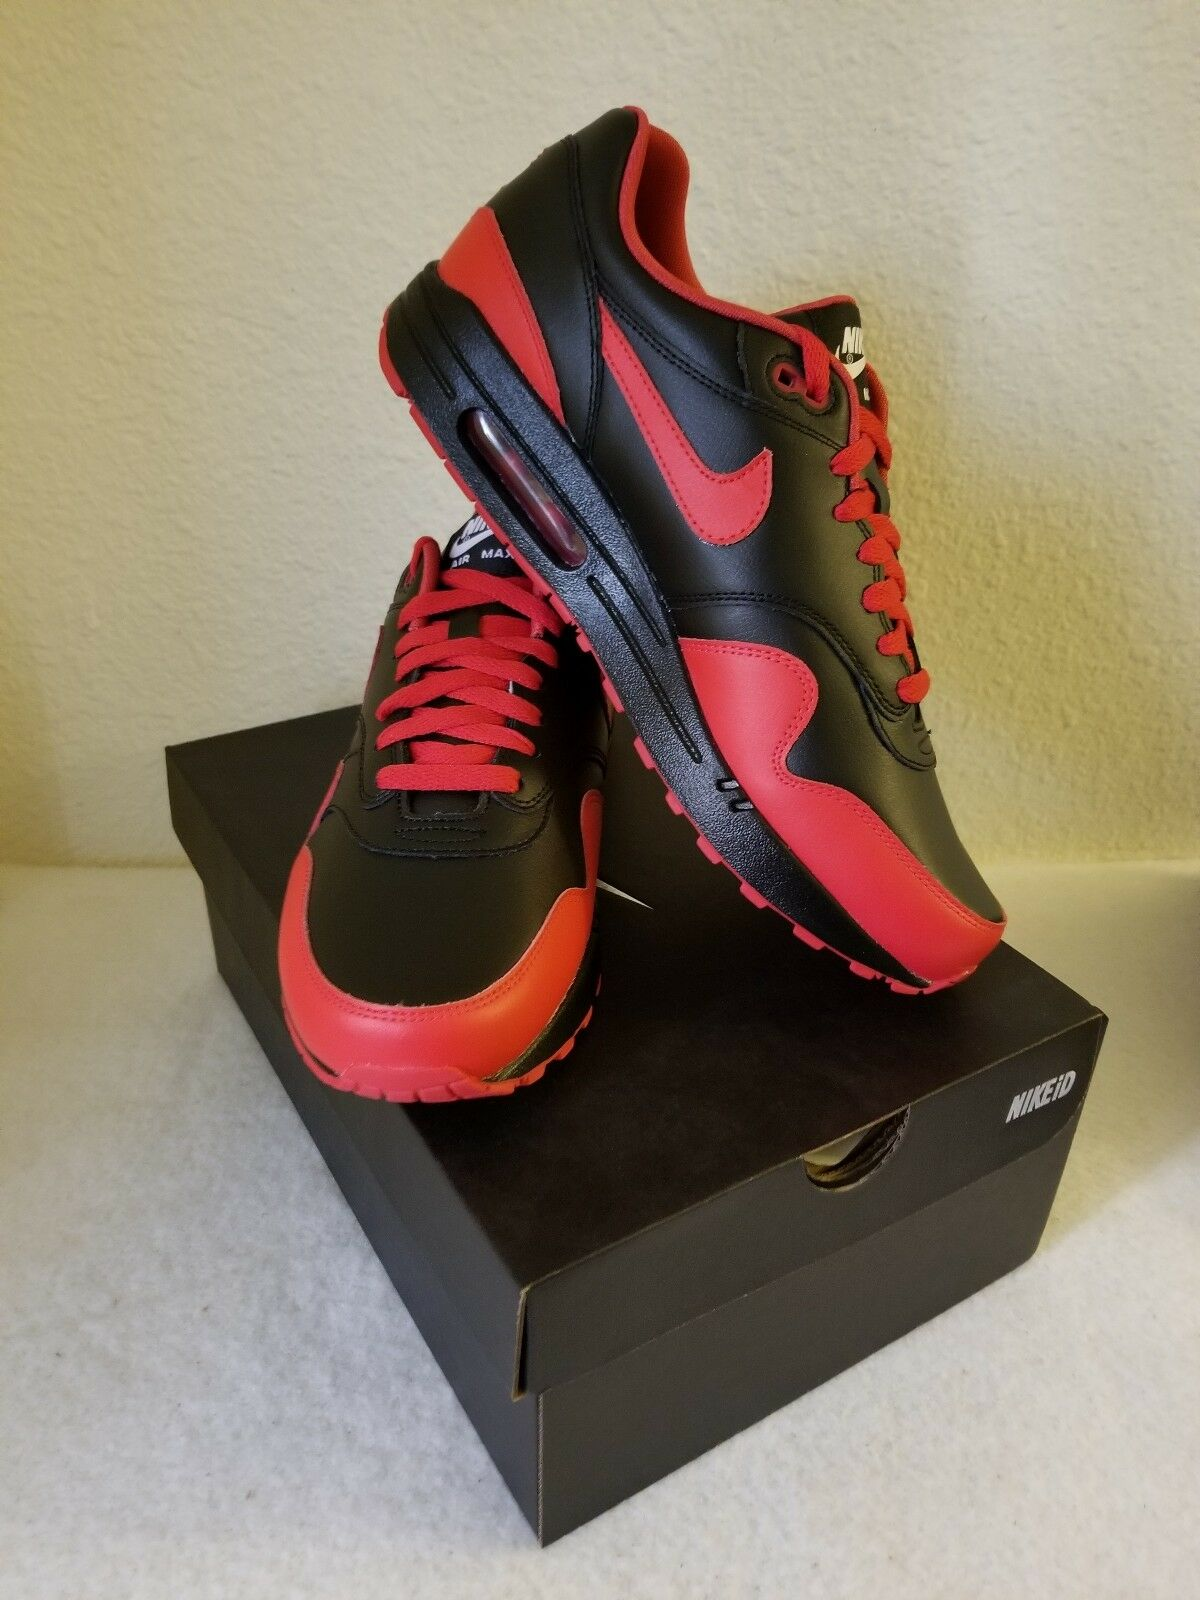 a4be392292 RARE Nike Air Max 1 NIKEiD Retro Bred Red Black colorway Size 10.5 ...